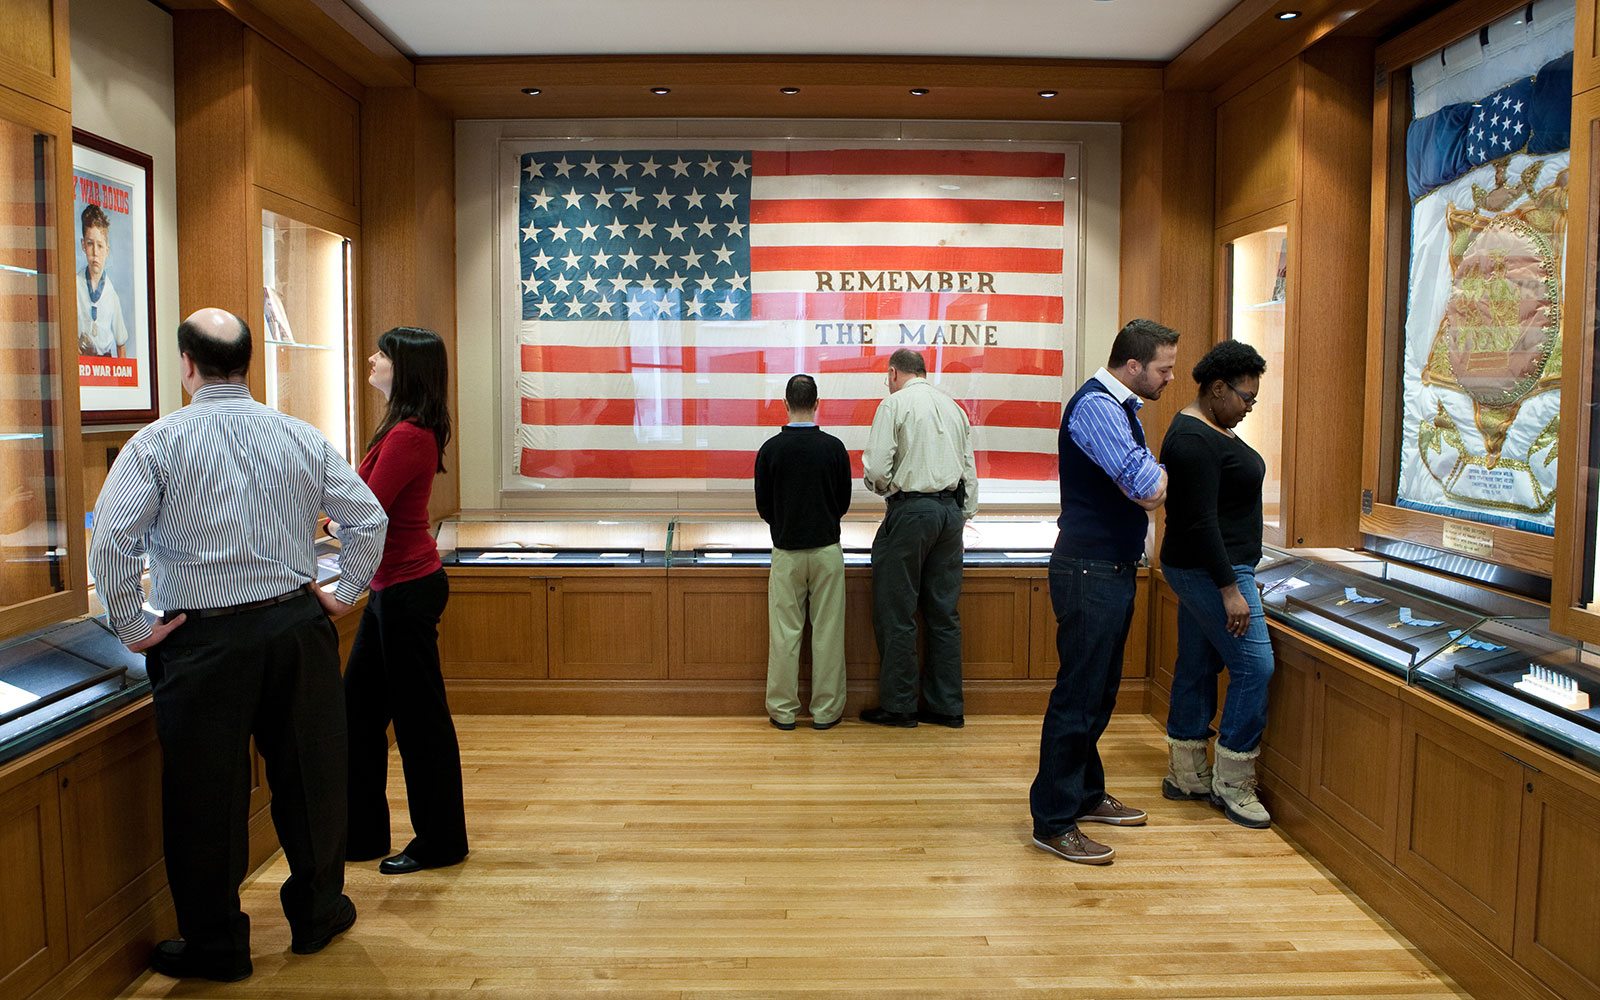 Chicago Cultural Spots: Pritzker Military Library